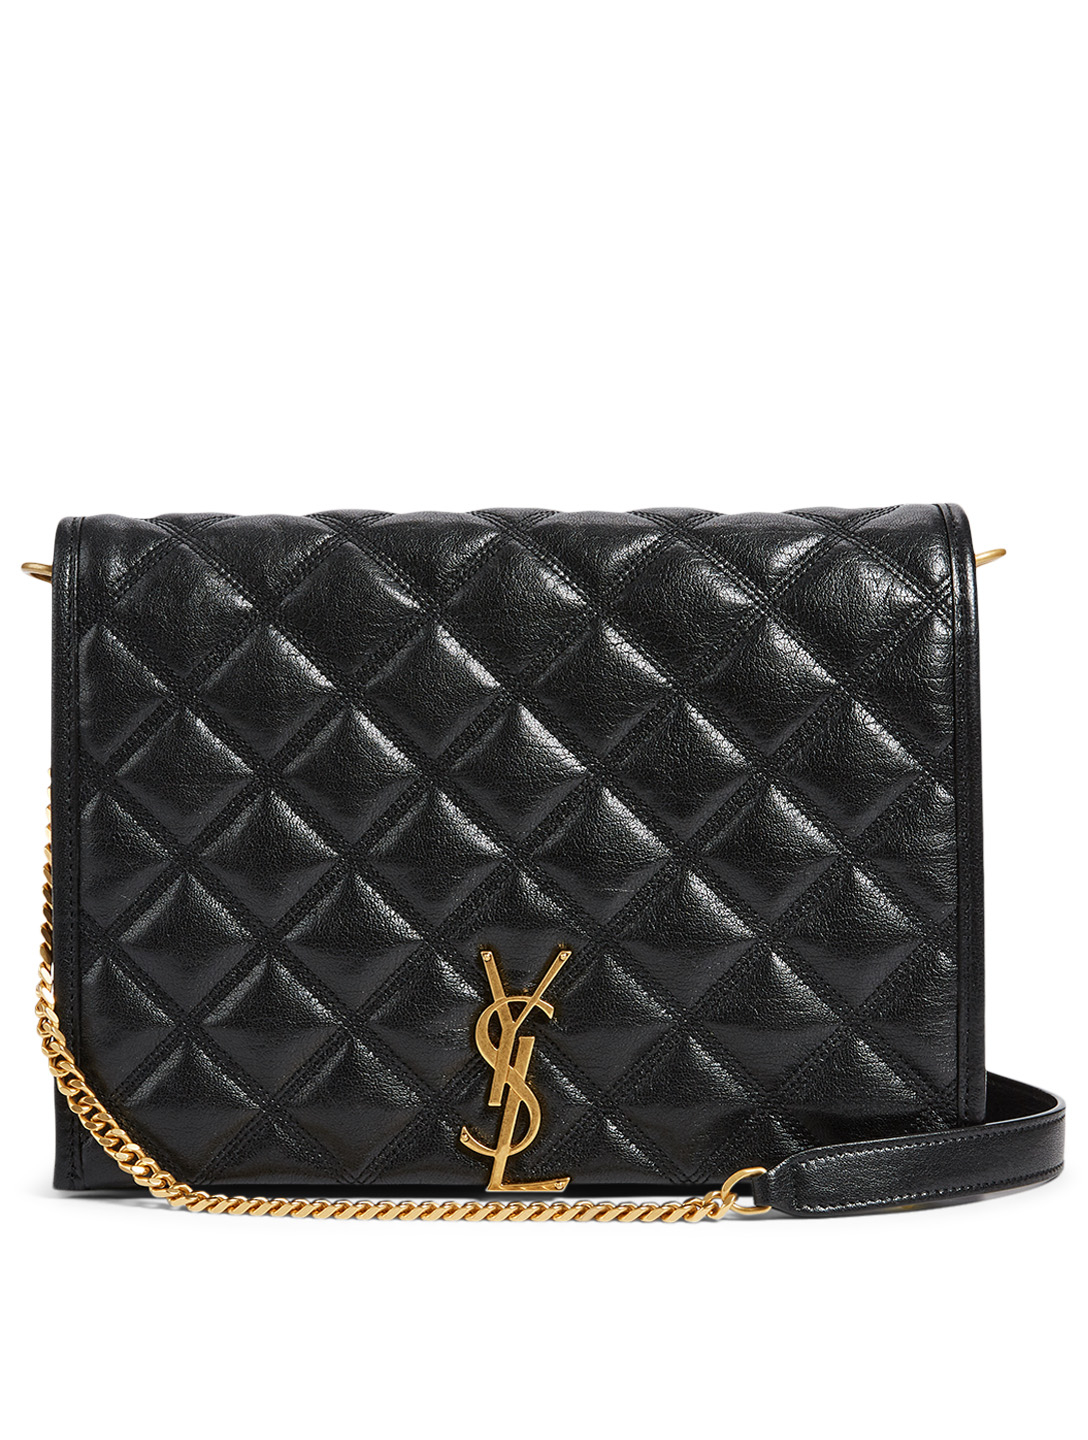 Small Becky Ysl Monogram Leather Bag by Holt Renfrew